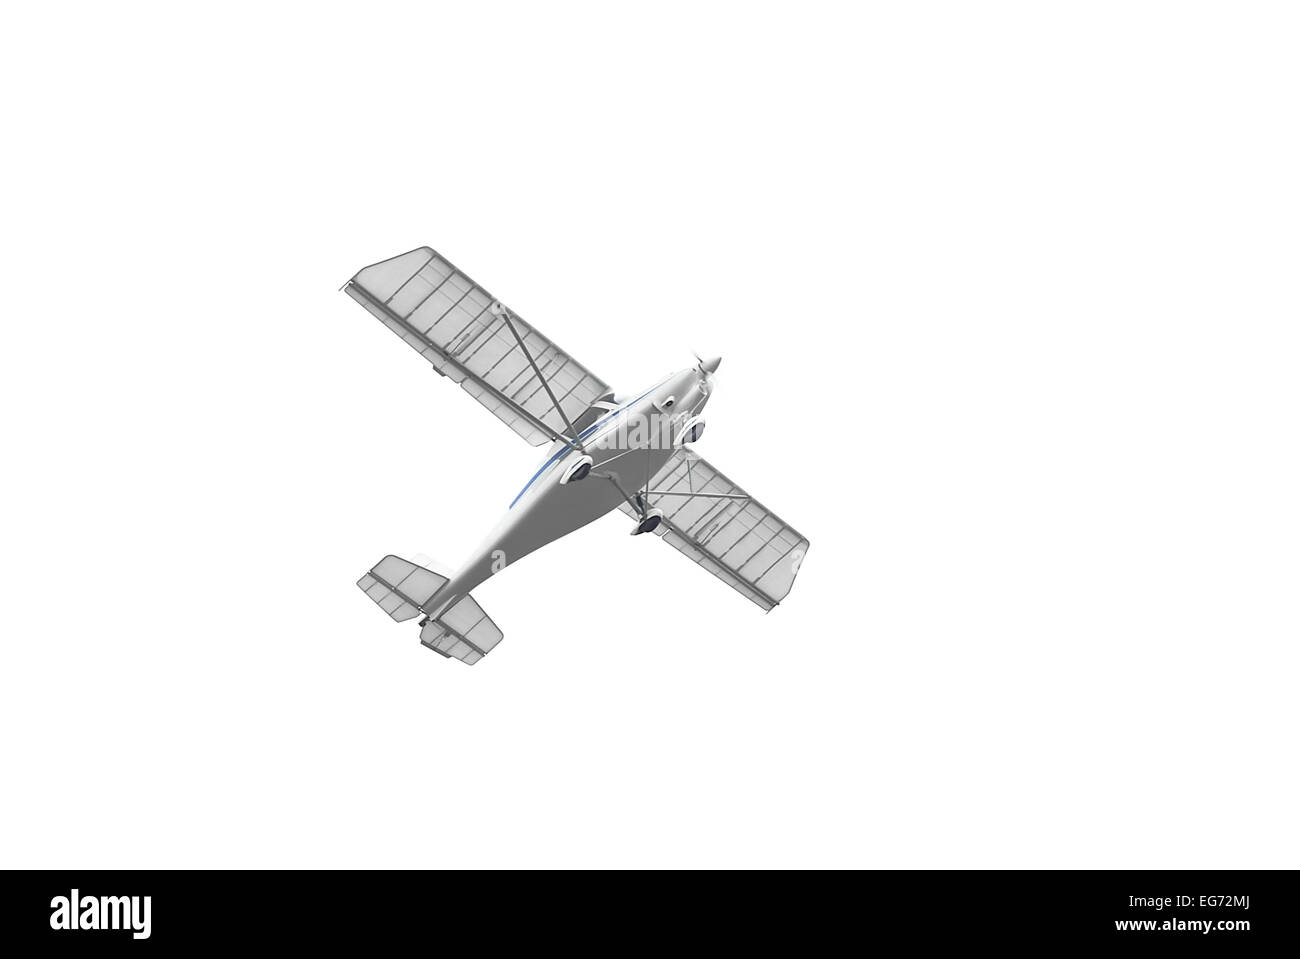 airplane isolated on white - Stock Image